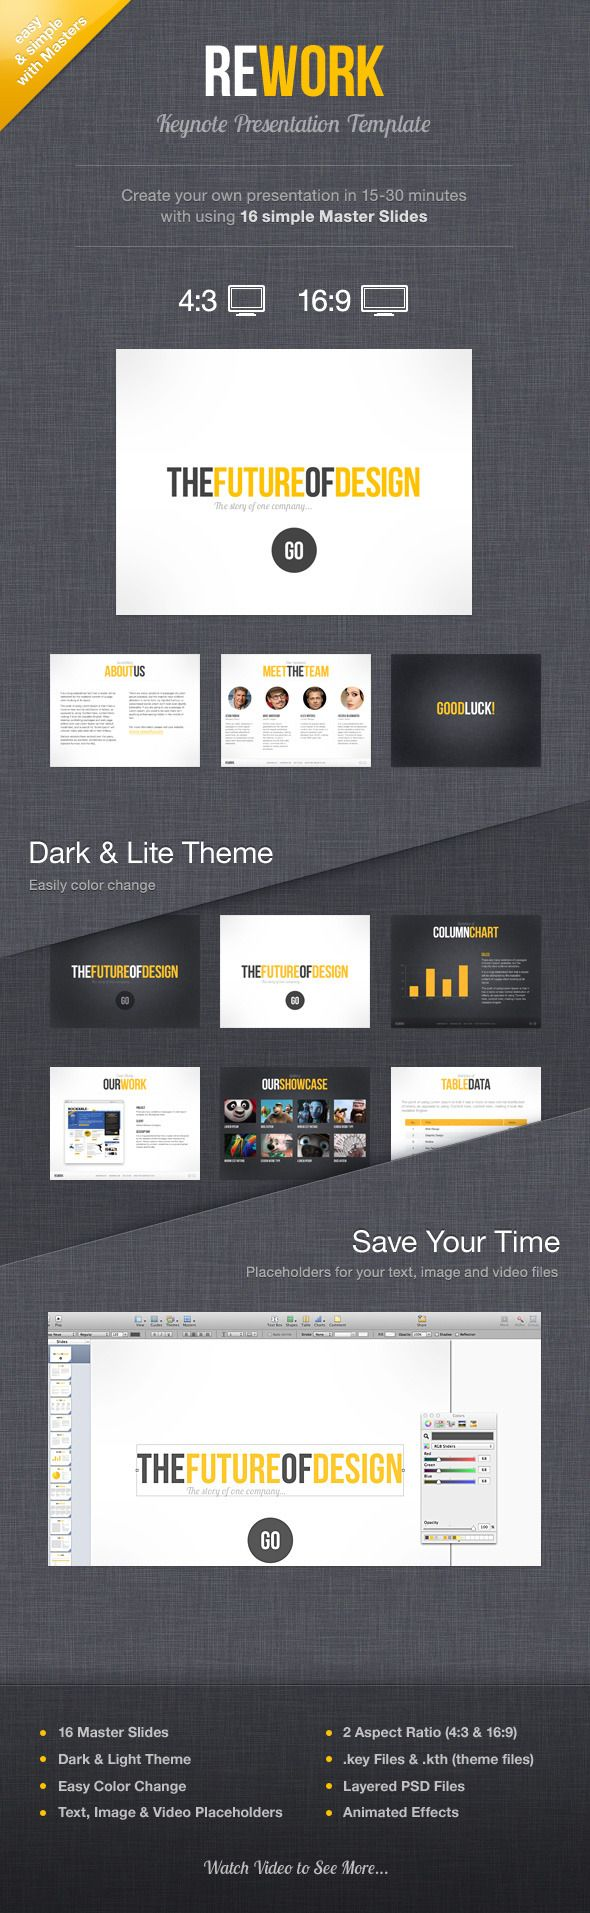 65 best keynote templates images on pinterest business rework keynote presentation template toneelgroepblik Choice Image